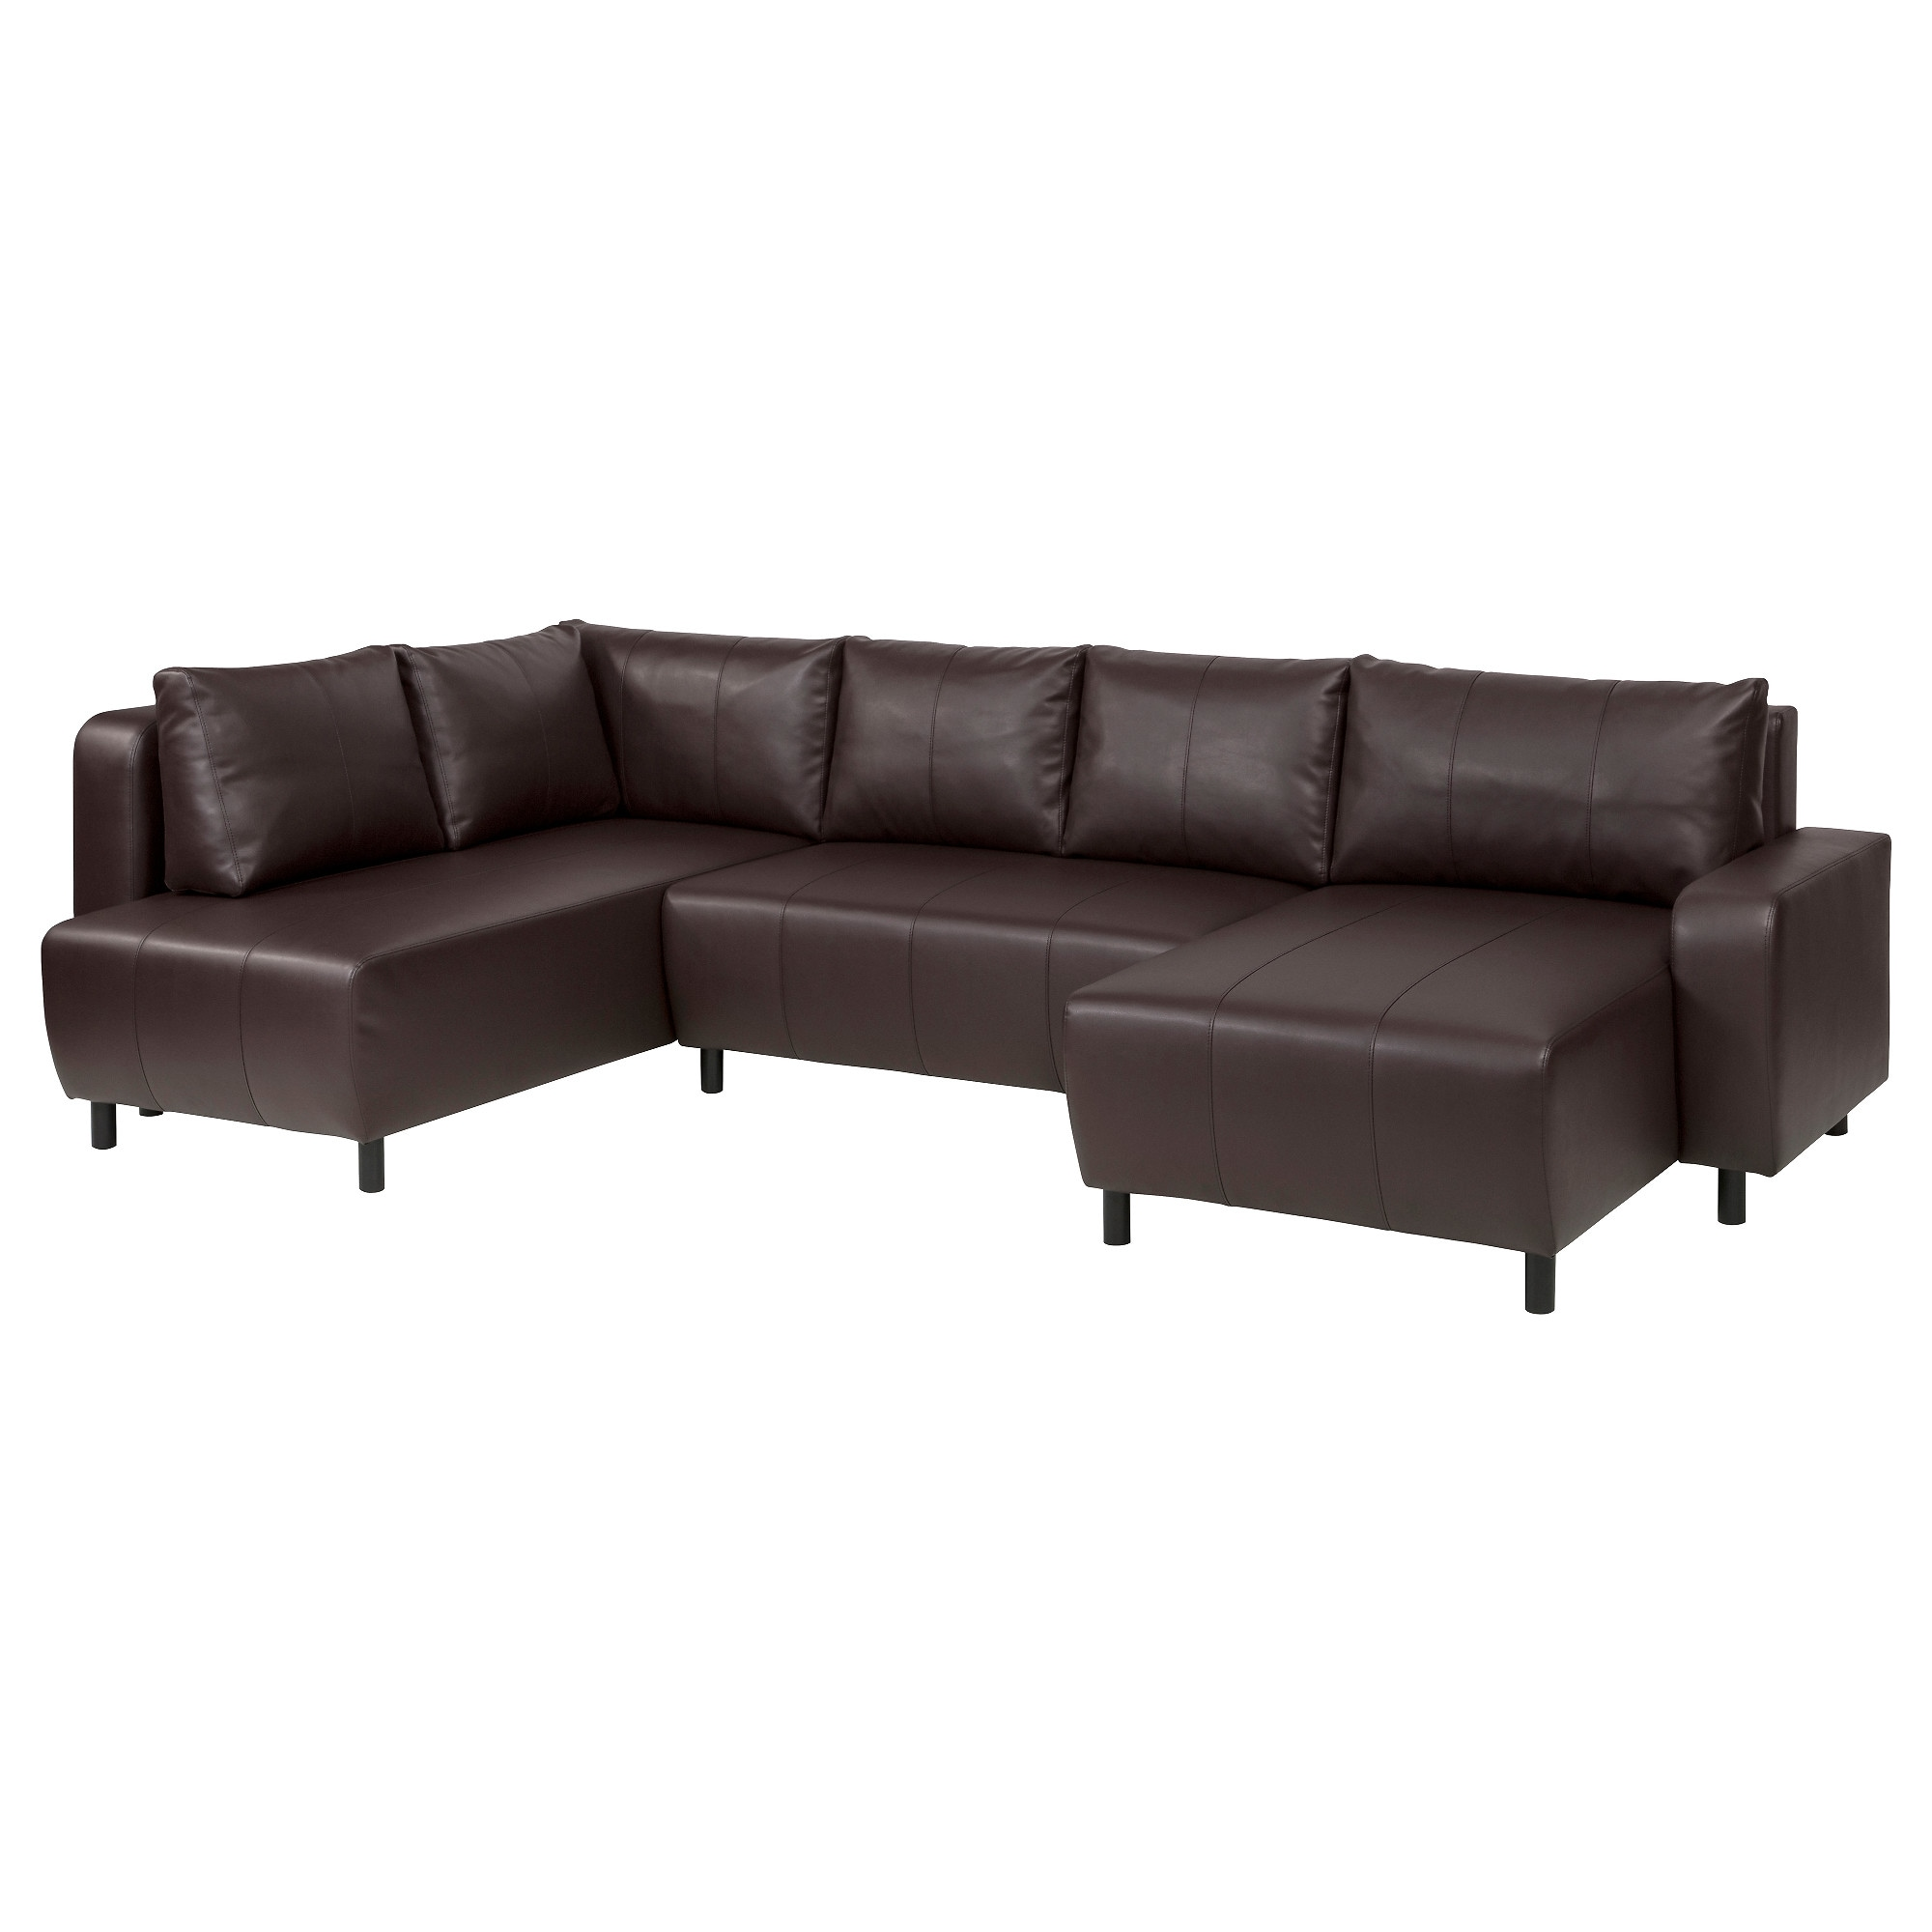 Brown chaise sofa sofa menzilperde net for Brown leather chaise